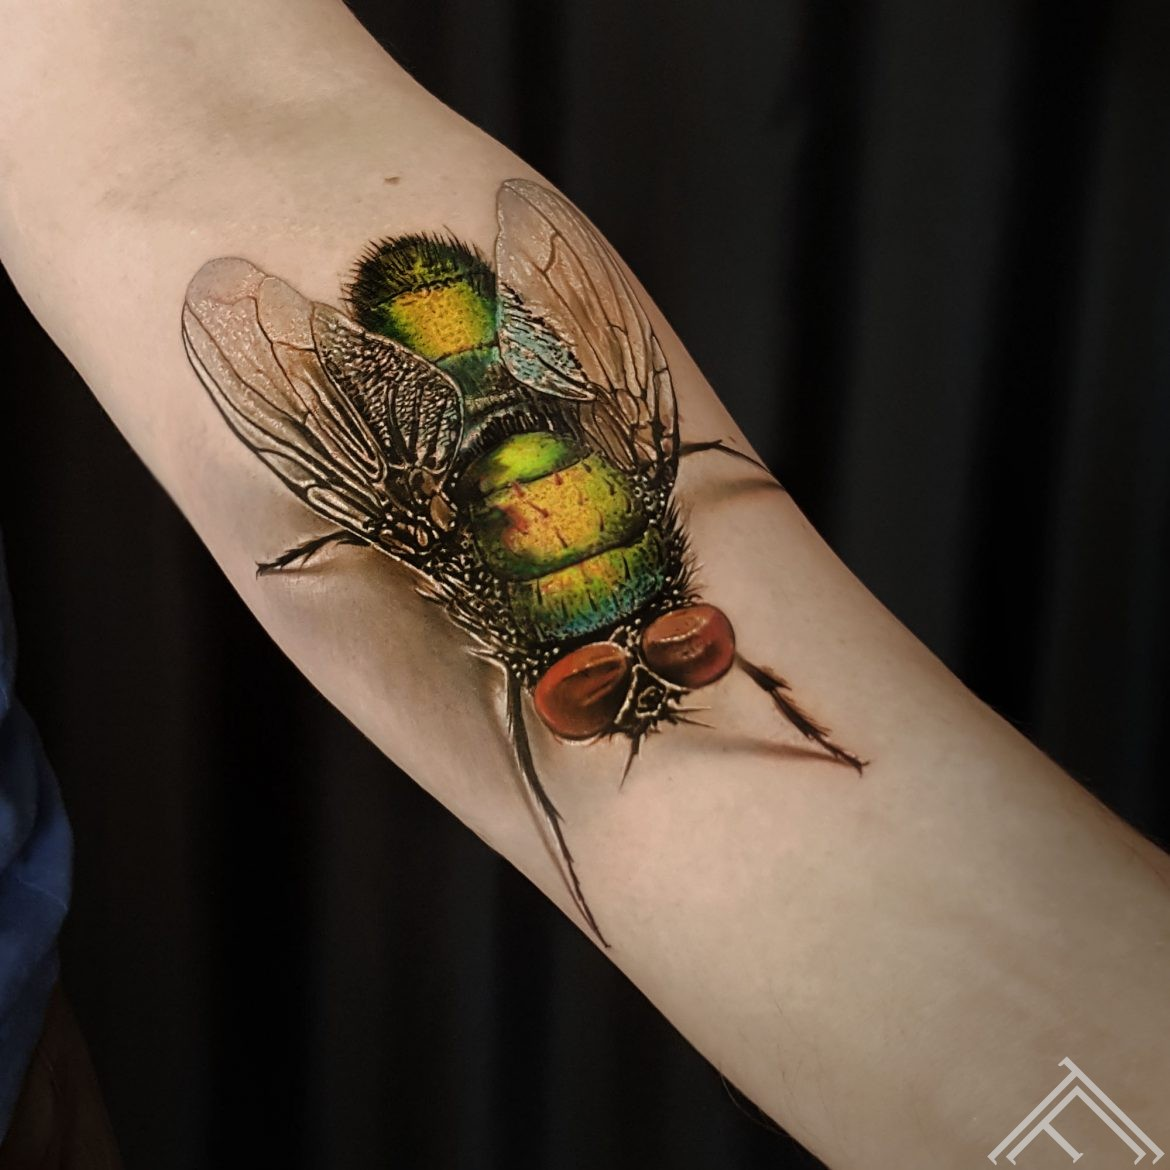 fly-tattoo-tattoofrequency-marispavlo